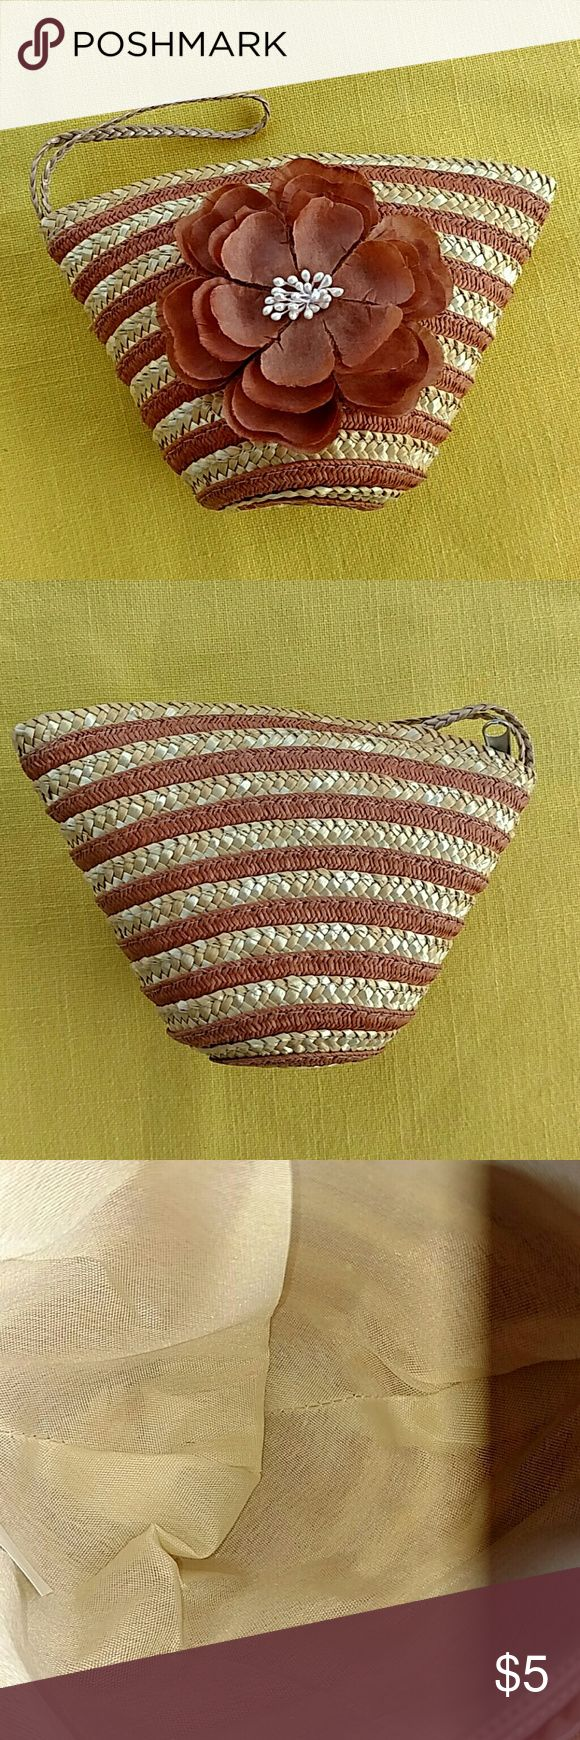 Straw purse Adorable little straw bag for that special occasion. Bags